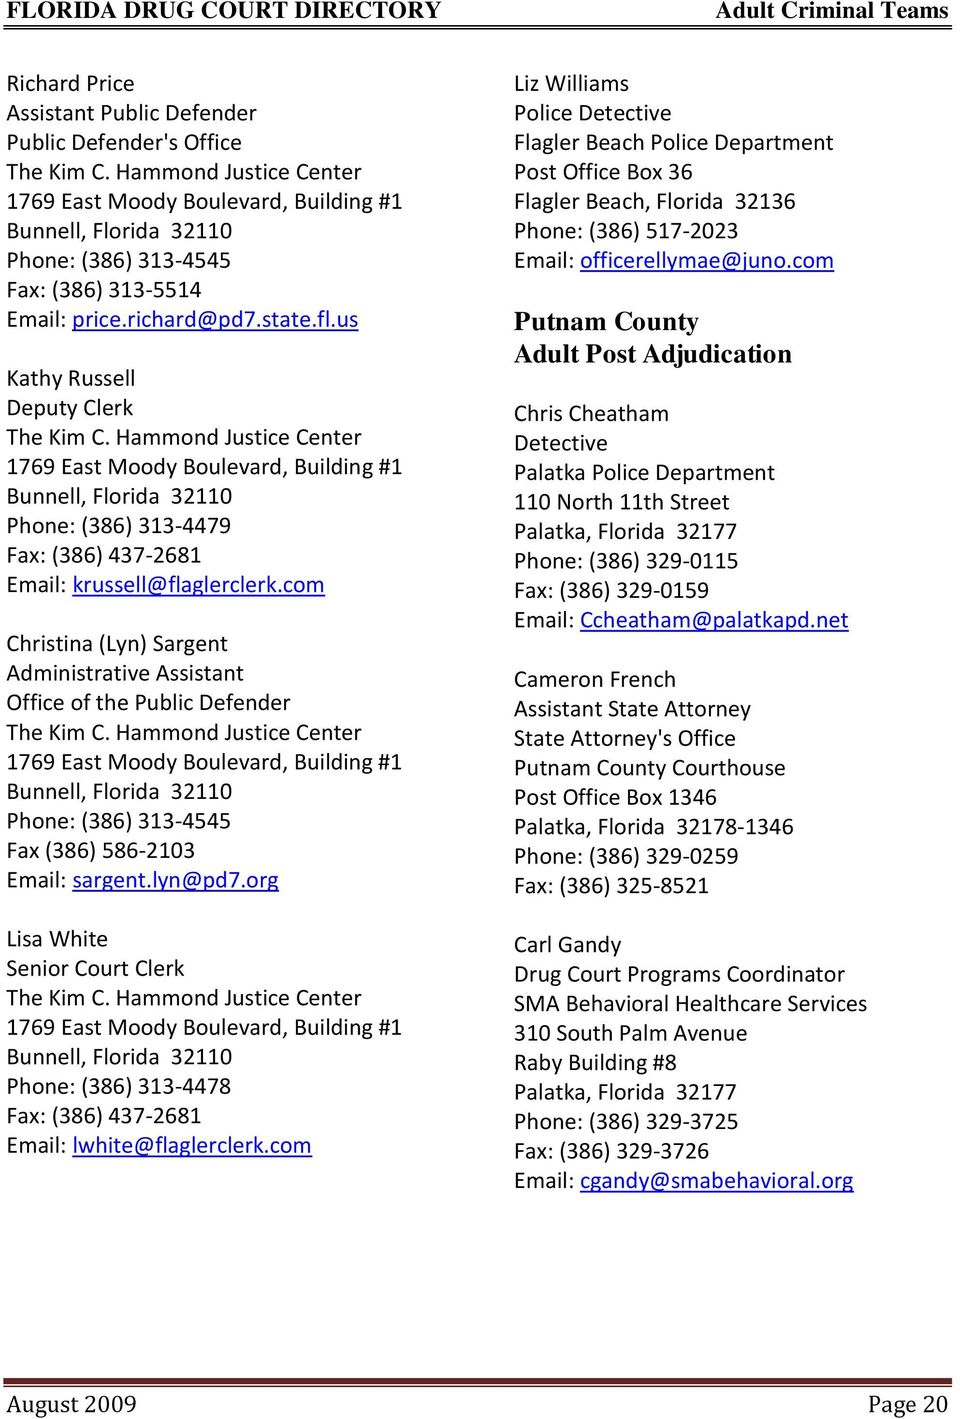 us Kathy Russell Deputy Clerk The Kim C. Hammond Justice Center 1769 East Moody Boulevard, Building #1 Bunnell, Florida 32110 Phone: (386) 313-4479 Fax: (386) 437-2681 Email: krussell@flaglerclerk.